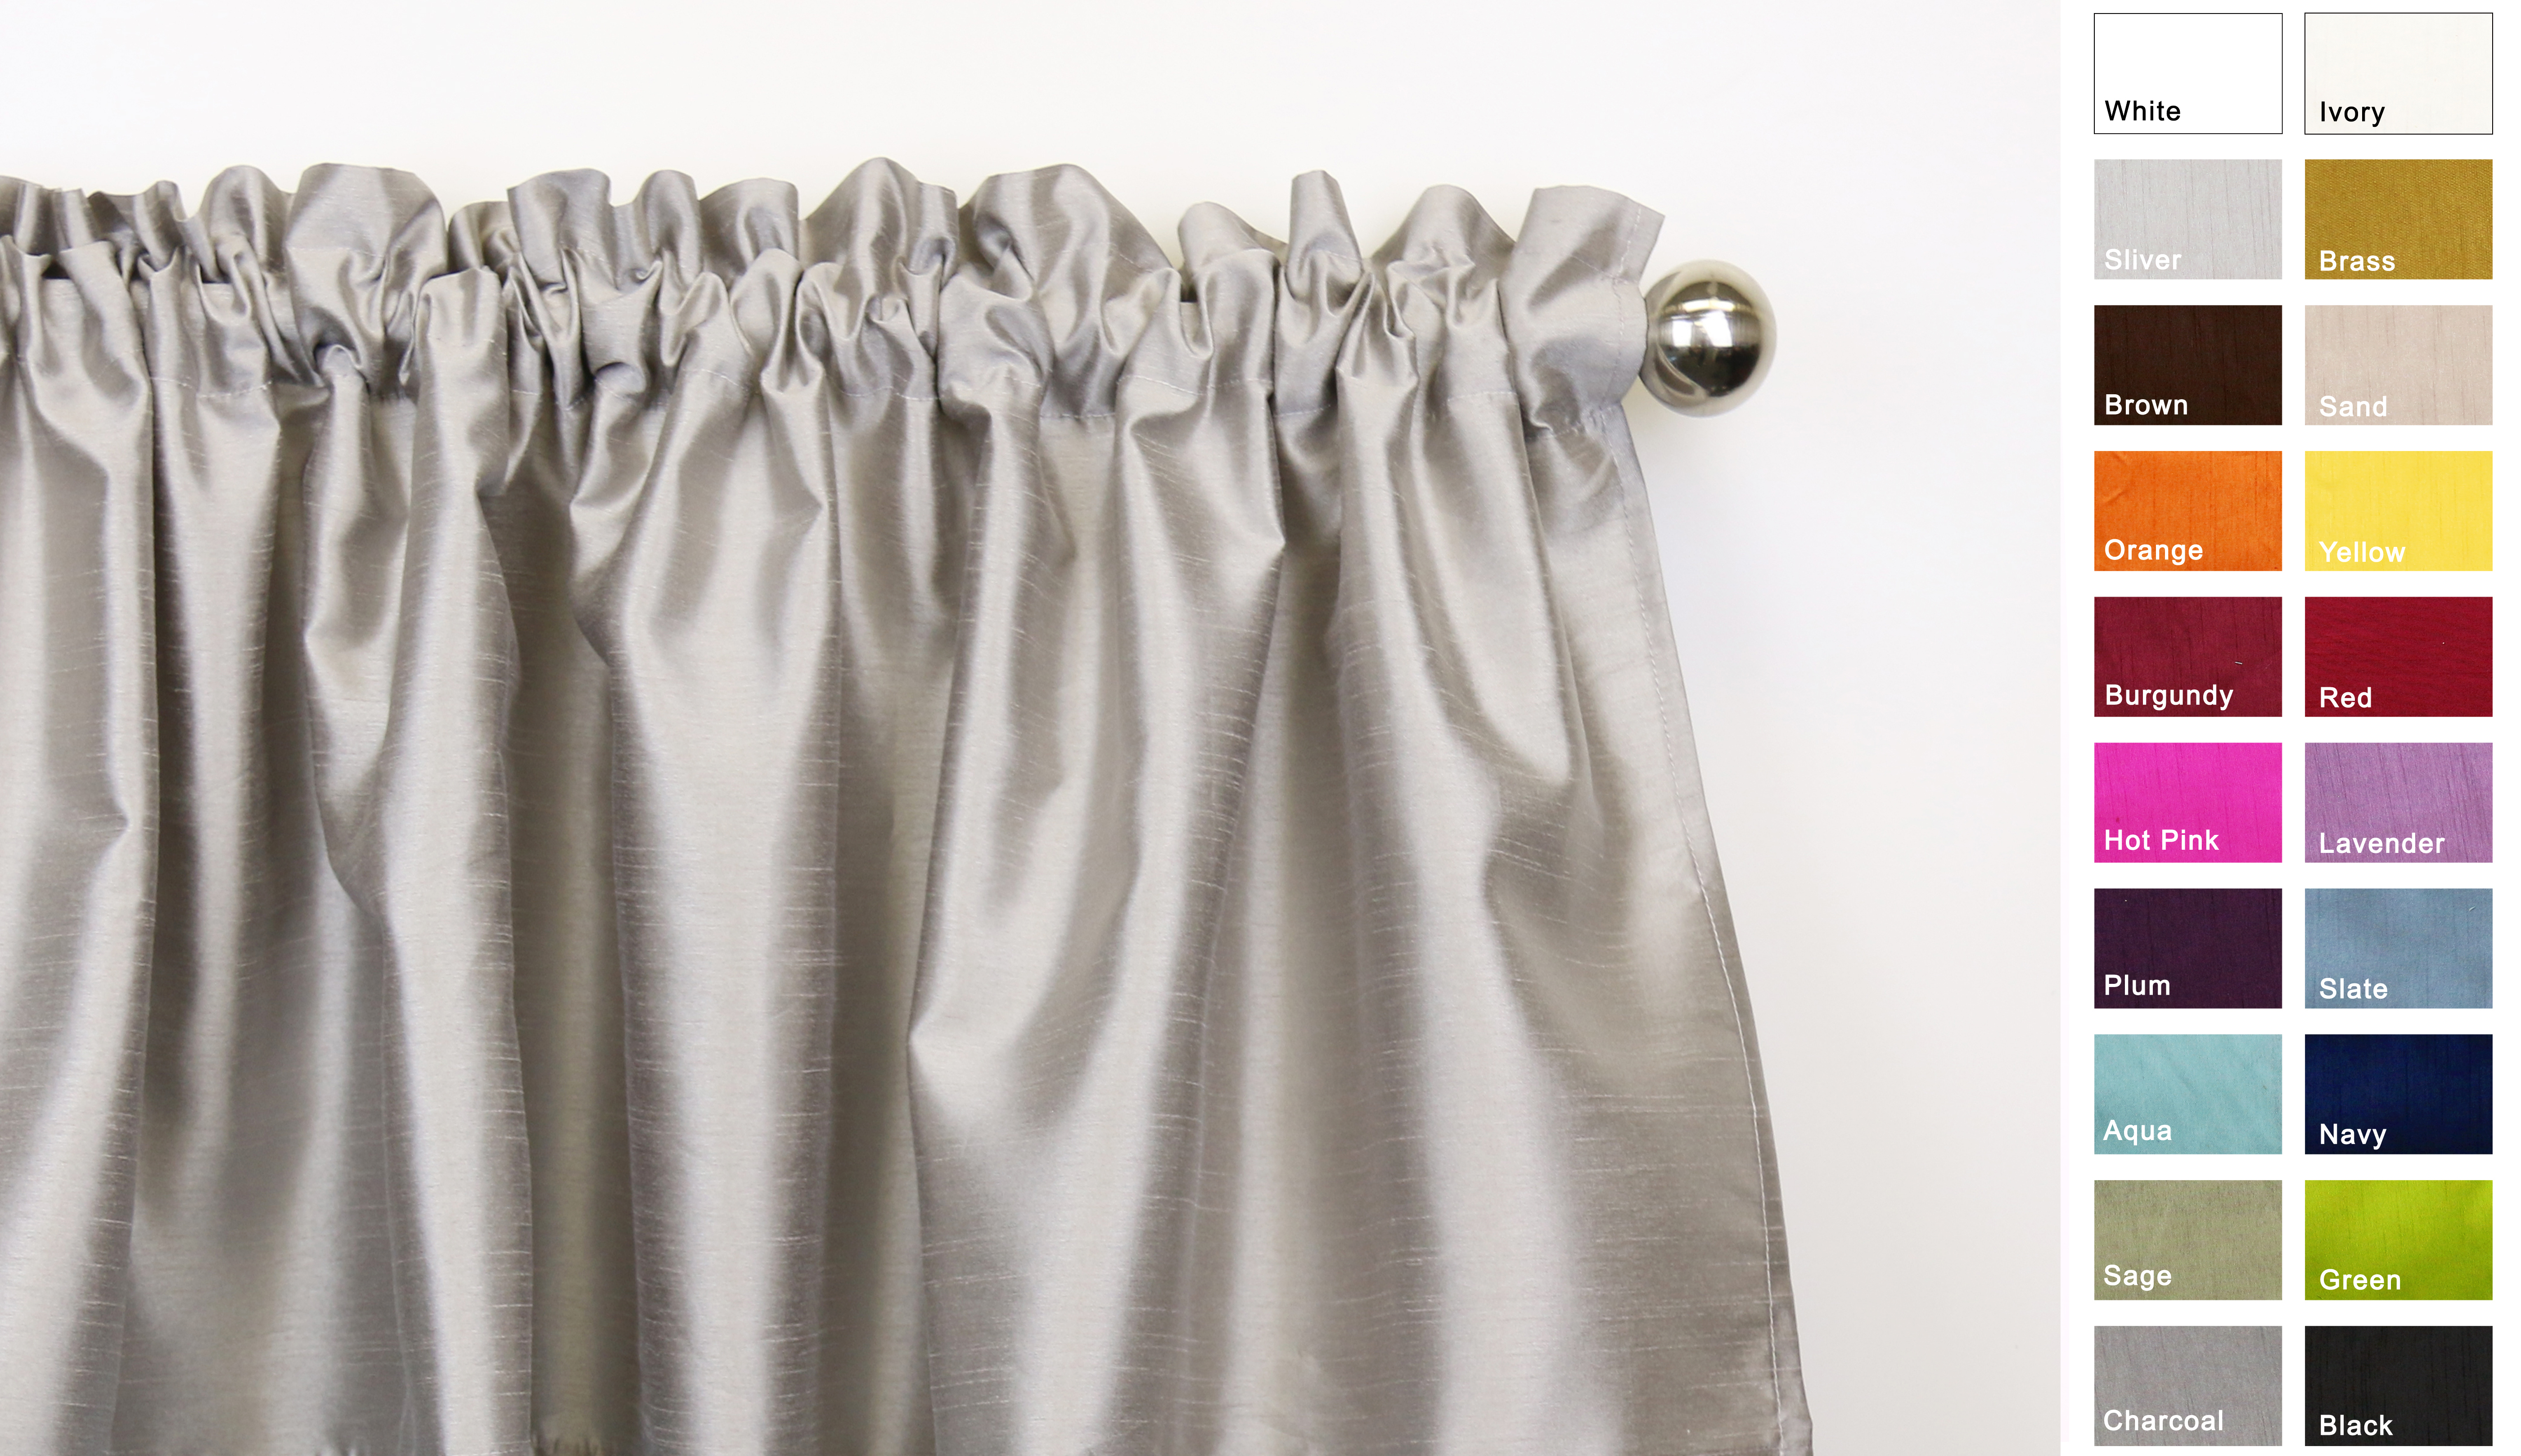 Aiking Home Solid Faux Silk Window Treatment   Curtain   Panel, Silver-Size 56''x63'' by Aiking Home Collection